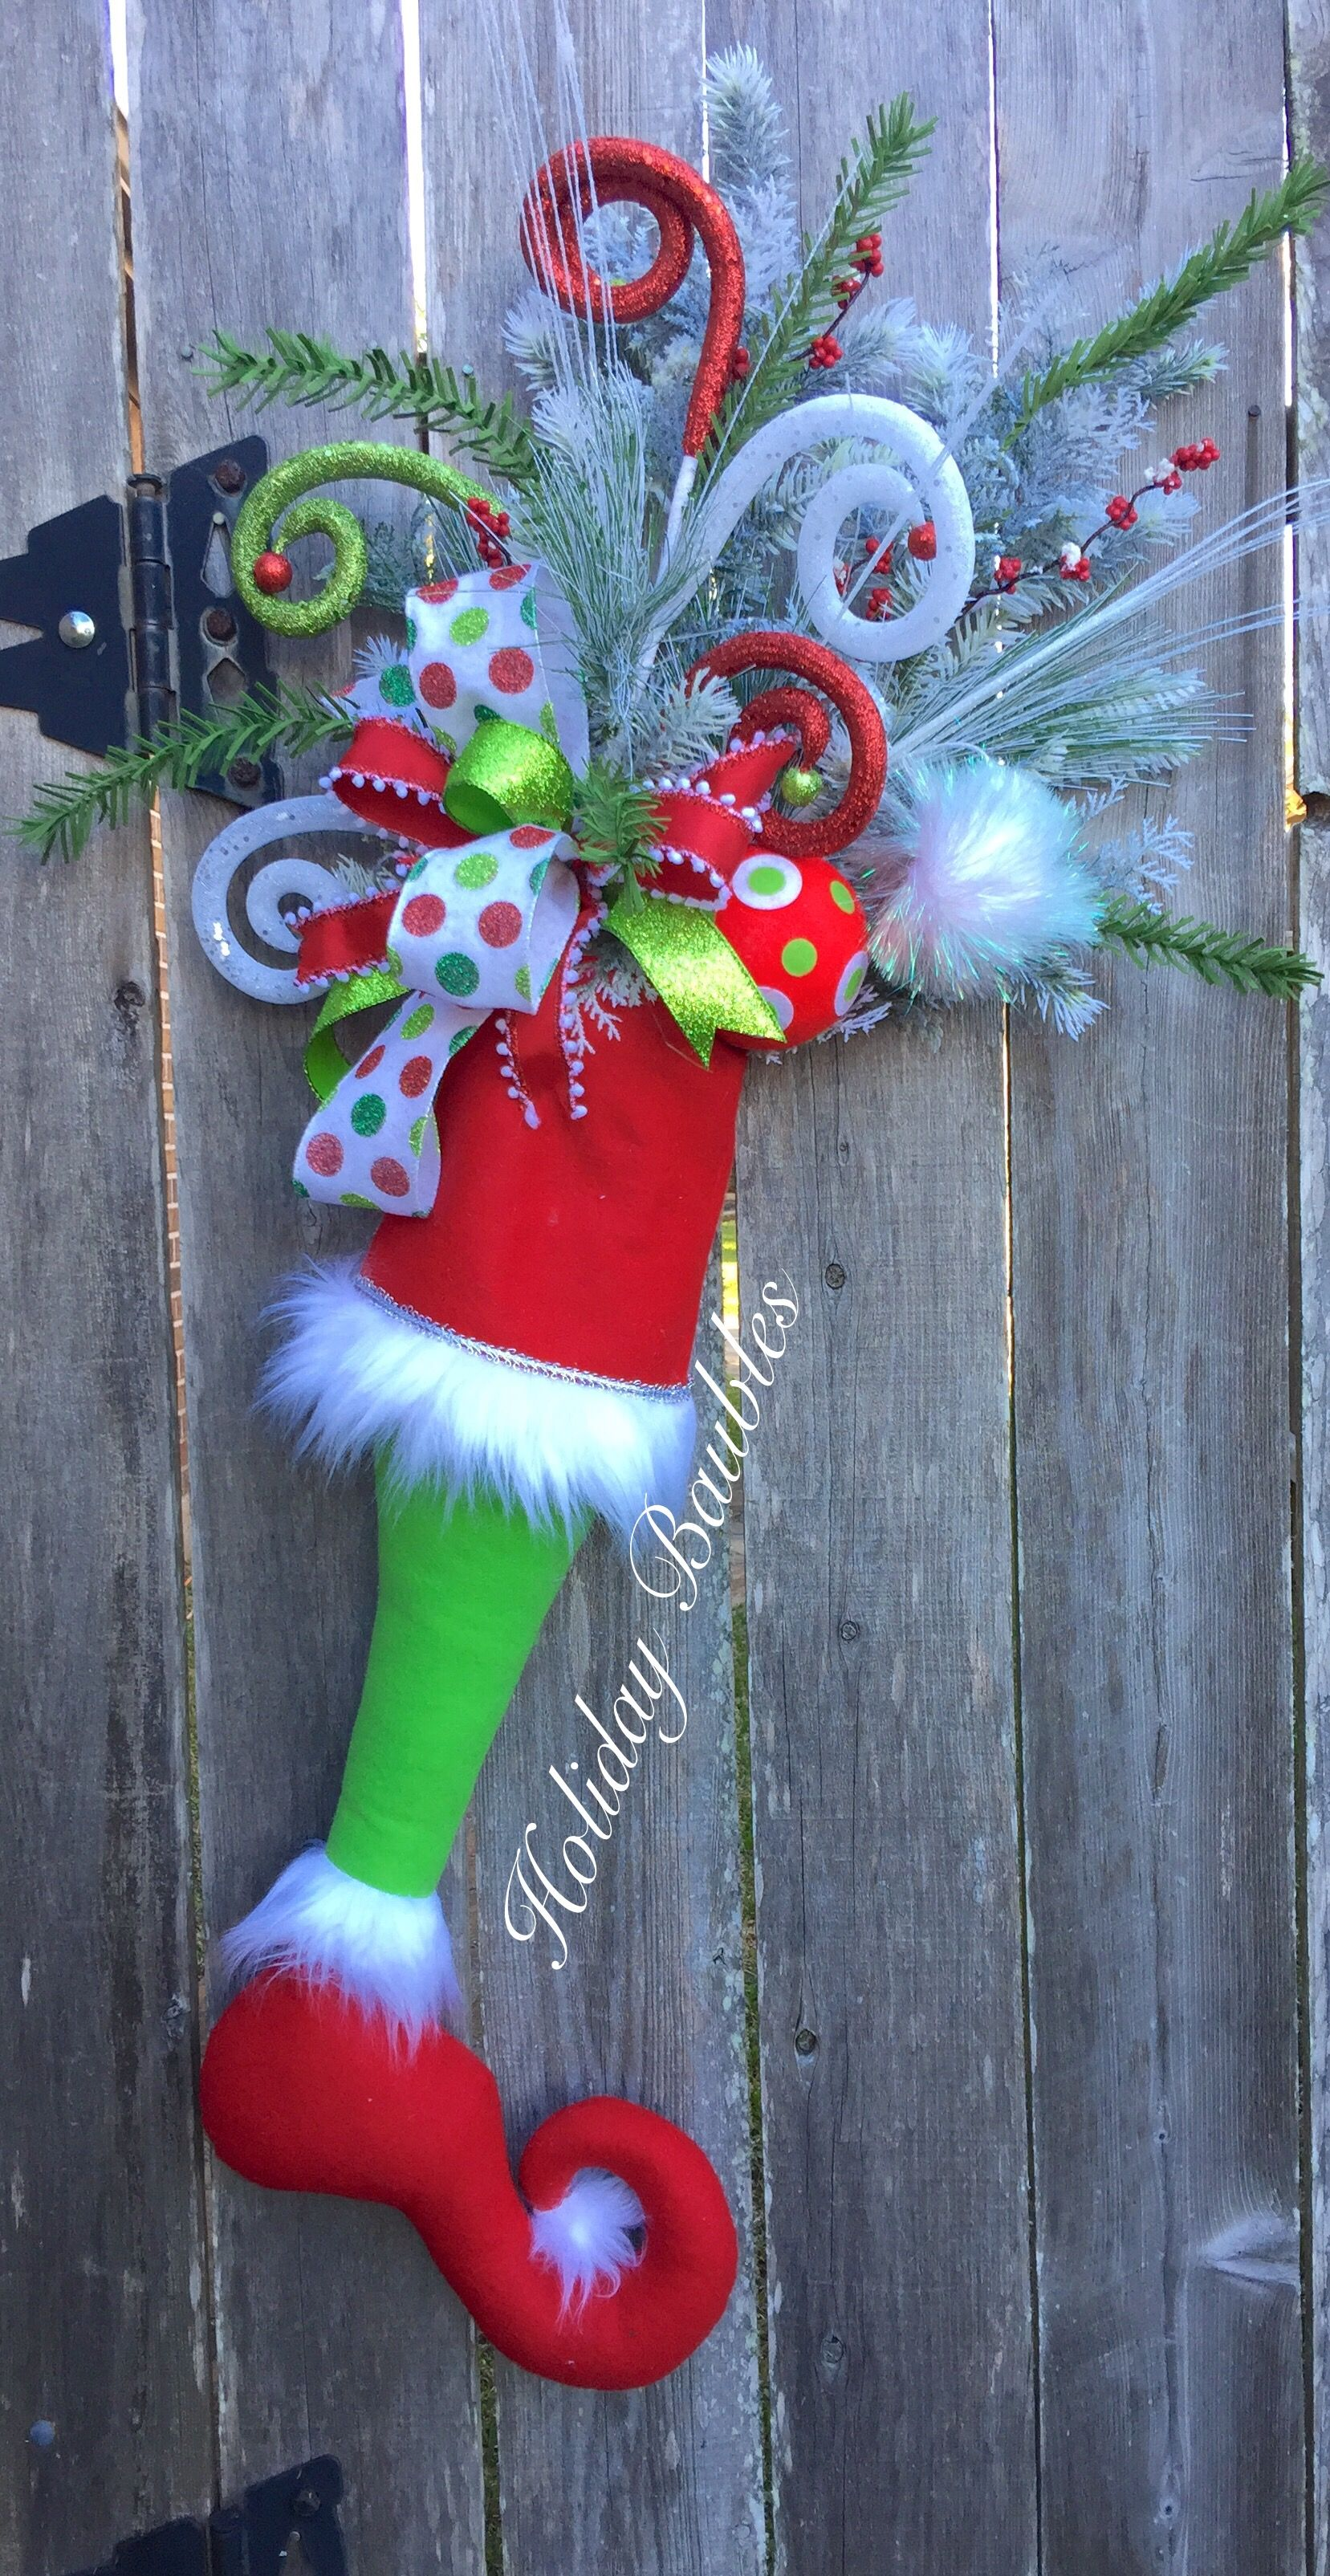 Grinch Stocking Door Hanger By Holiday Baubles Grinch